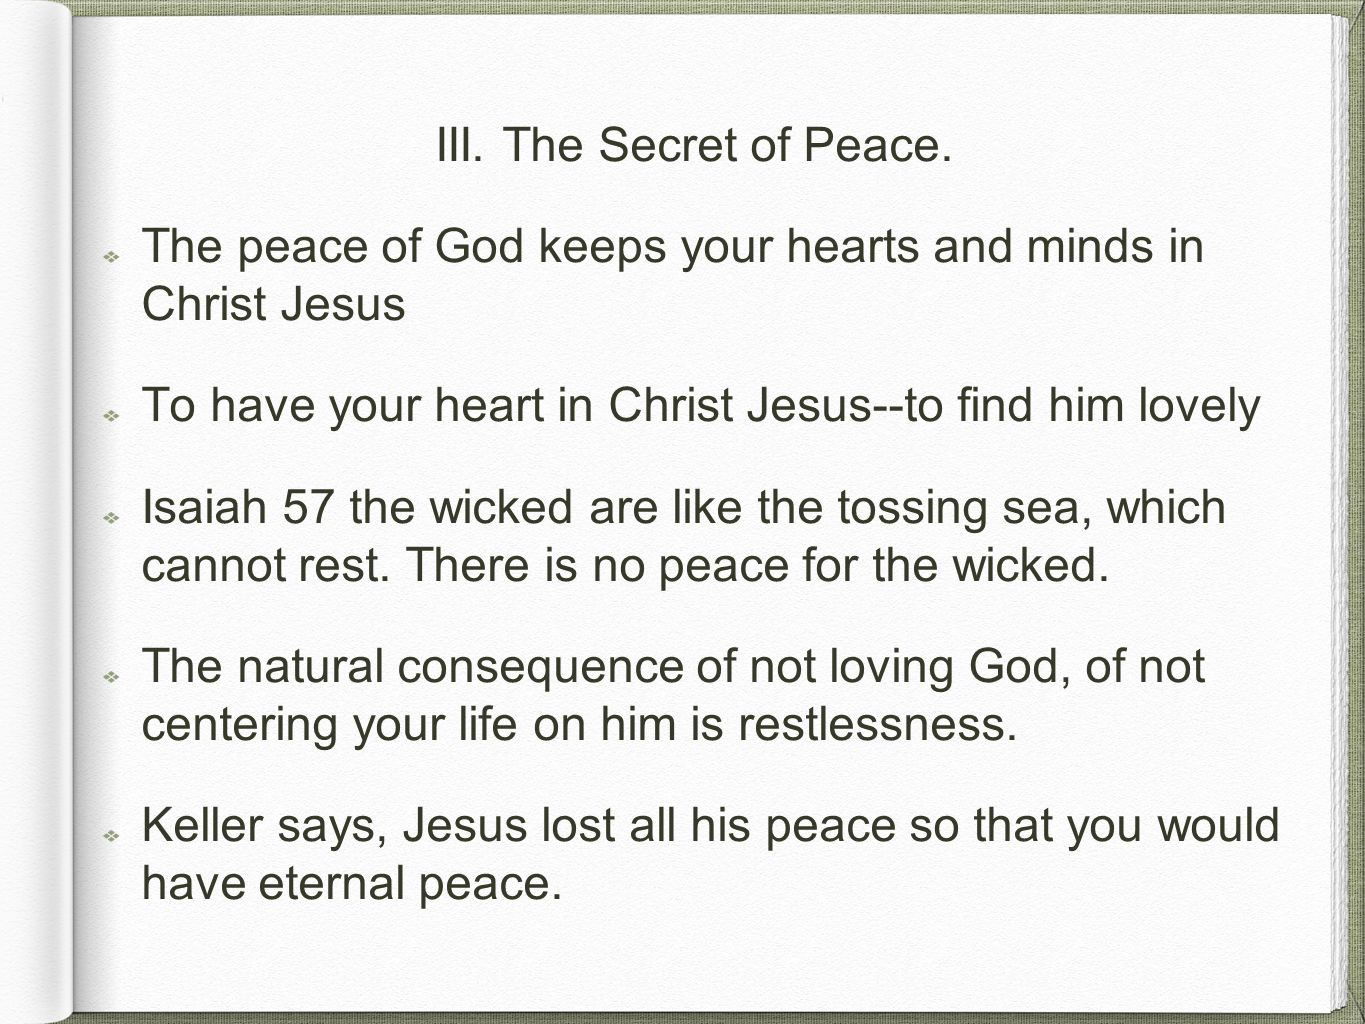 III.The Secret of Peace.